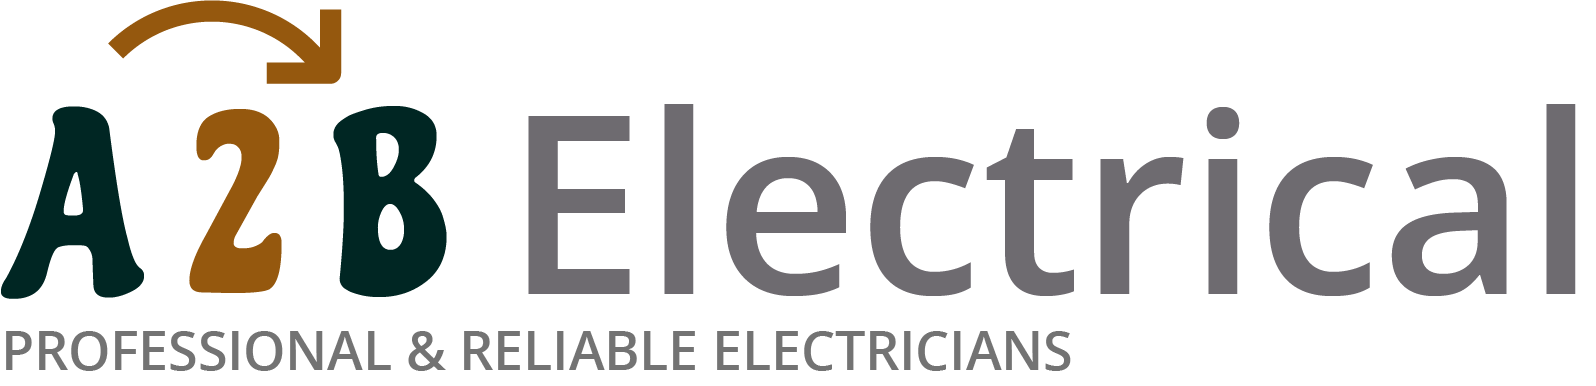 If you have electrical wiring problems in Hayes, we can provide an electrician to have a look for you.